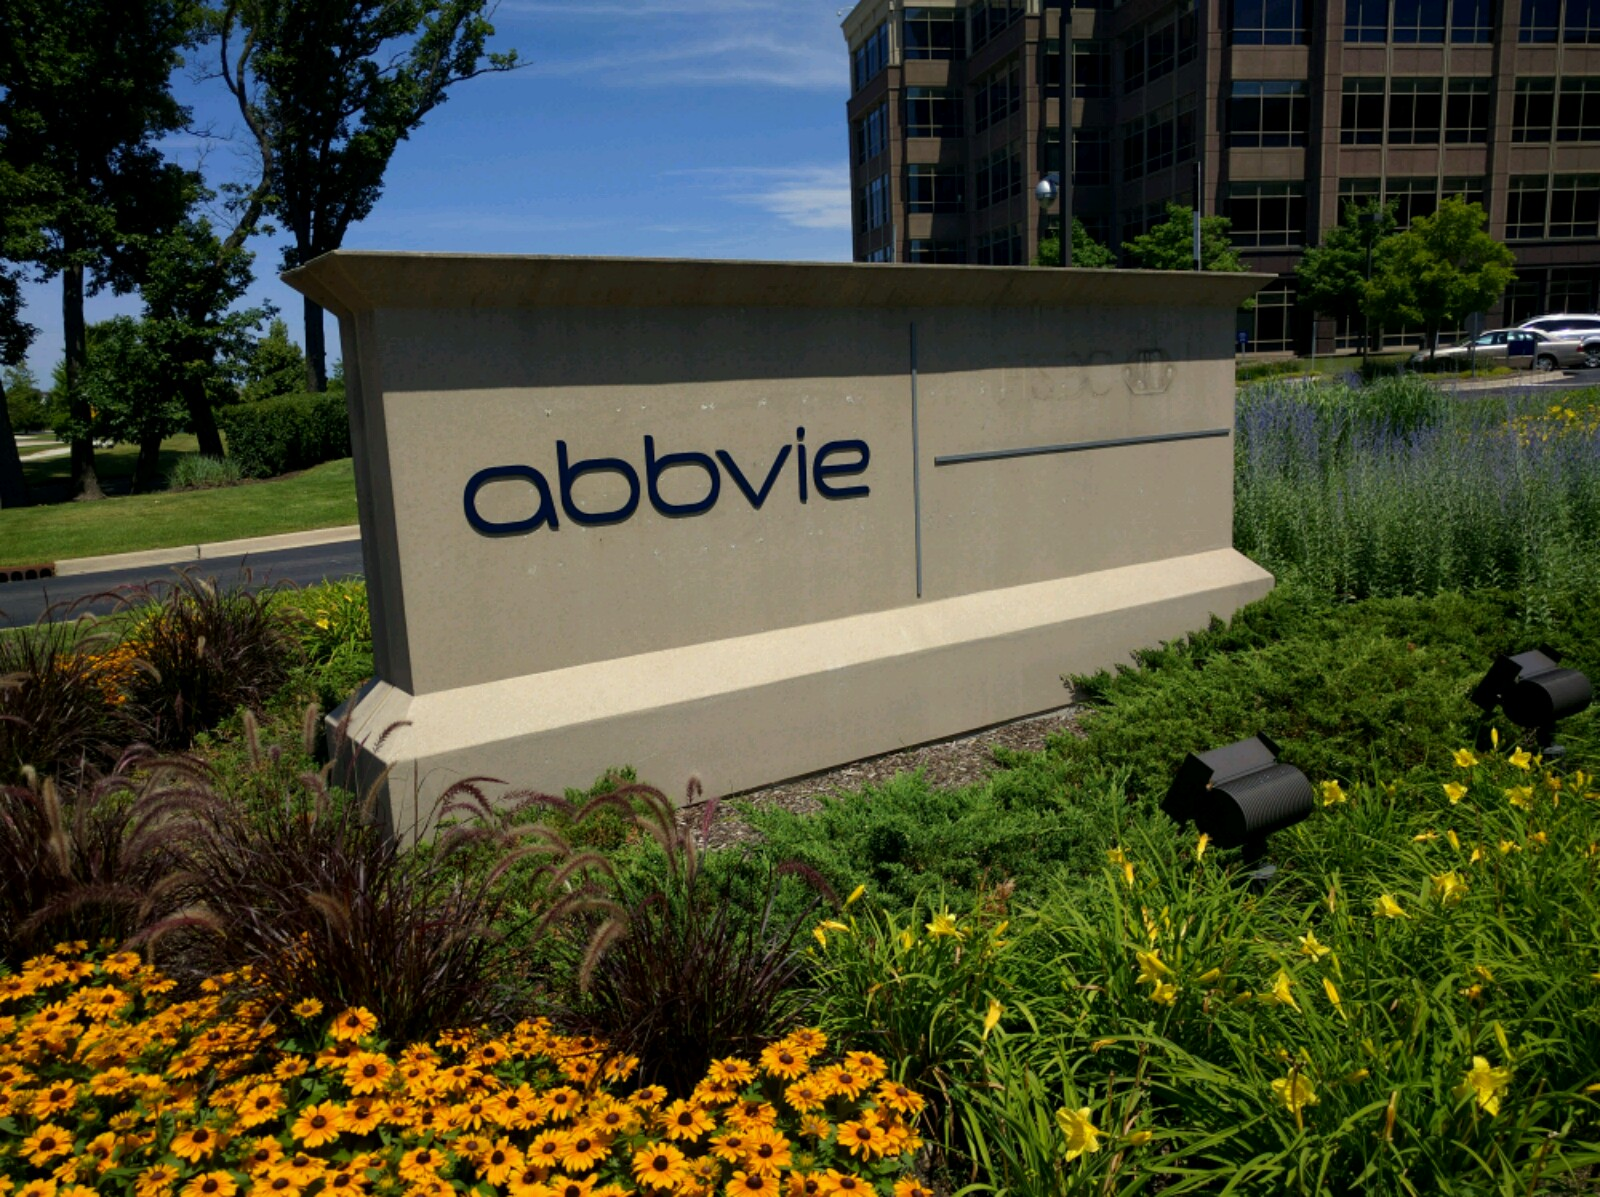 Entrance to Abbvie's office in Lake Forest, Illinois.